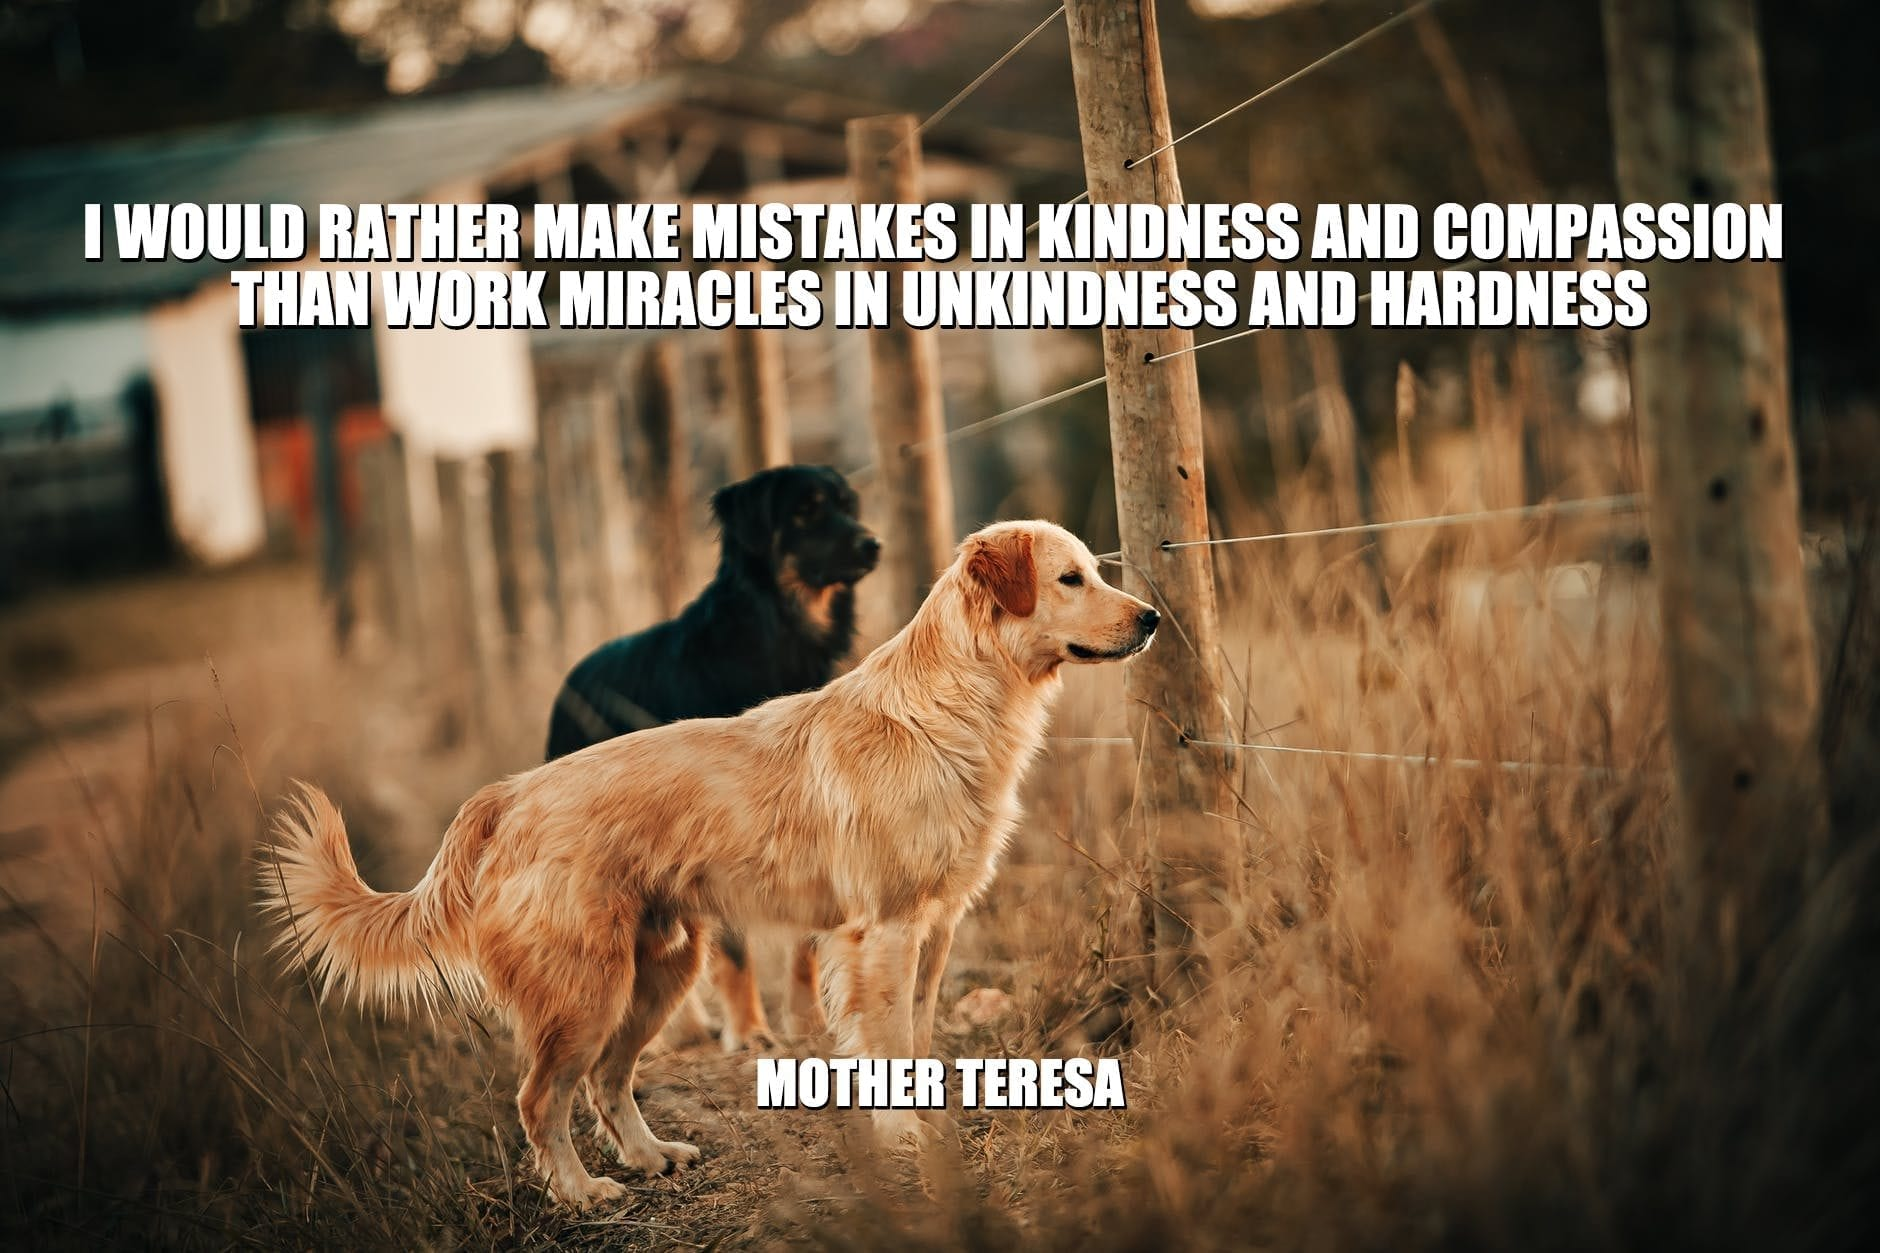 Daily Quotes: I Would Rather Make Mistakes In Kindness And Compassion Than Work Miracles In Unkindness And Hardness petworldglobal.com